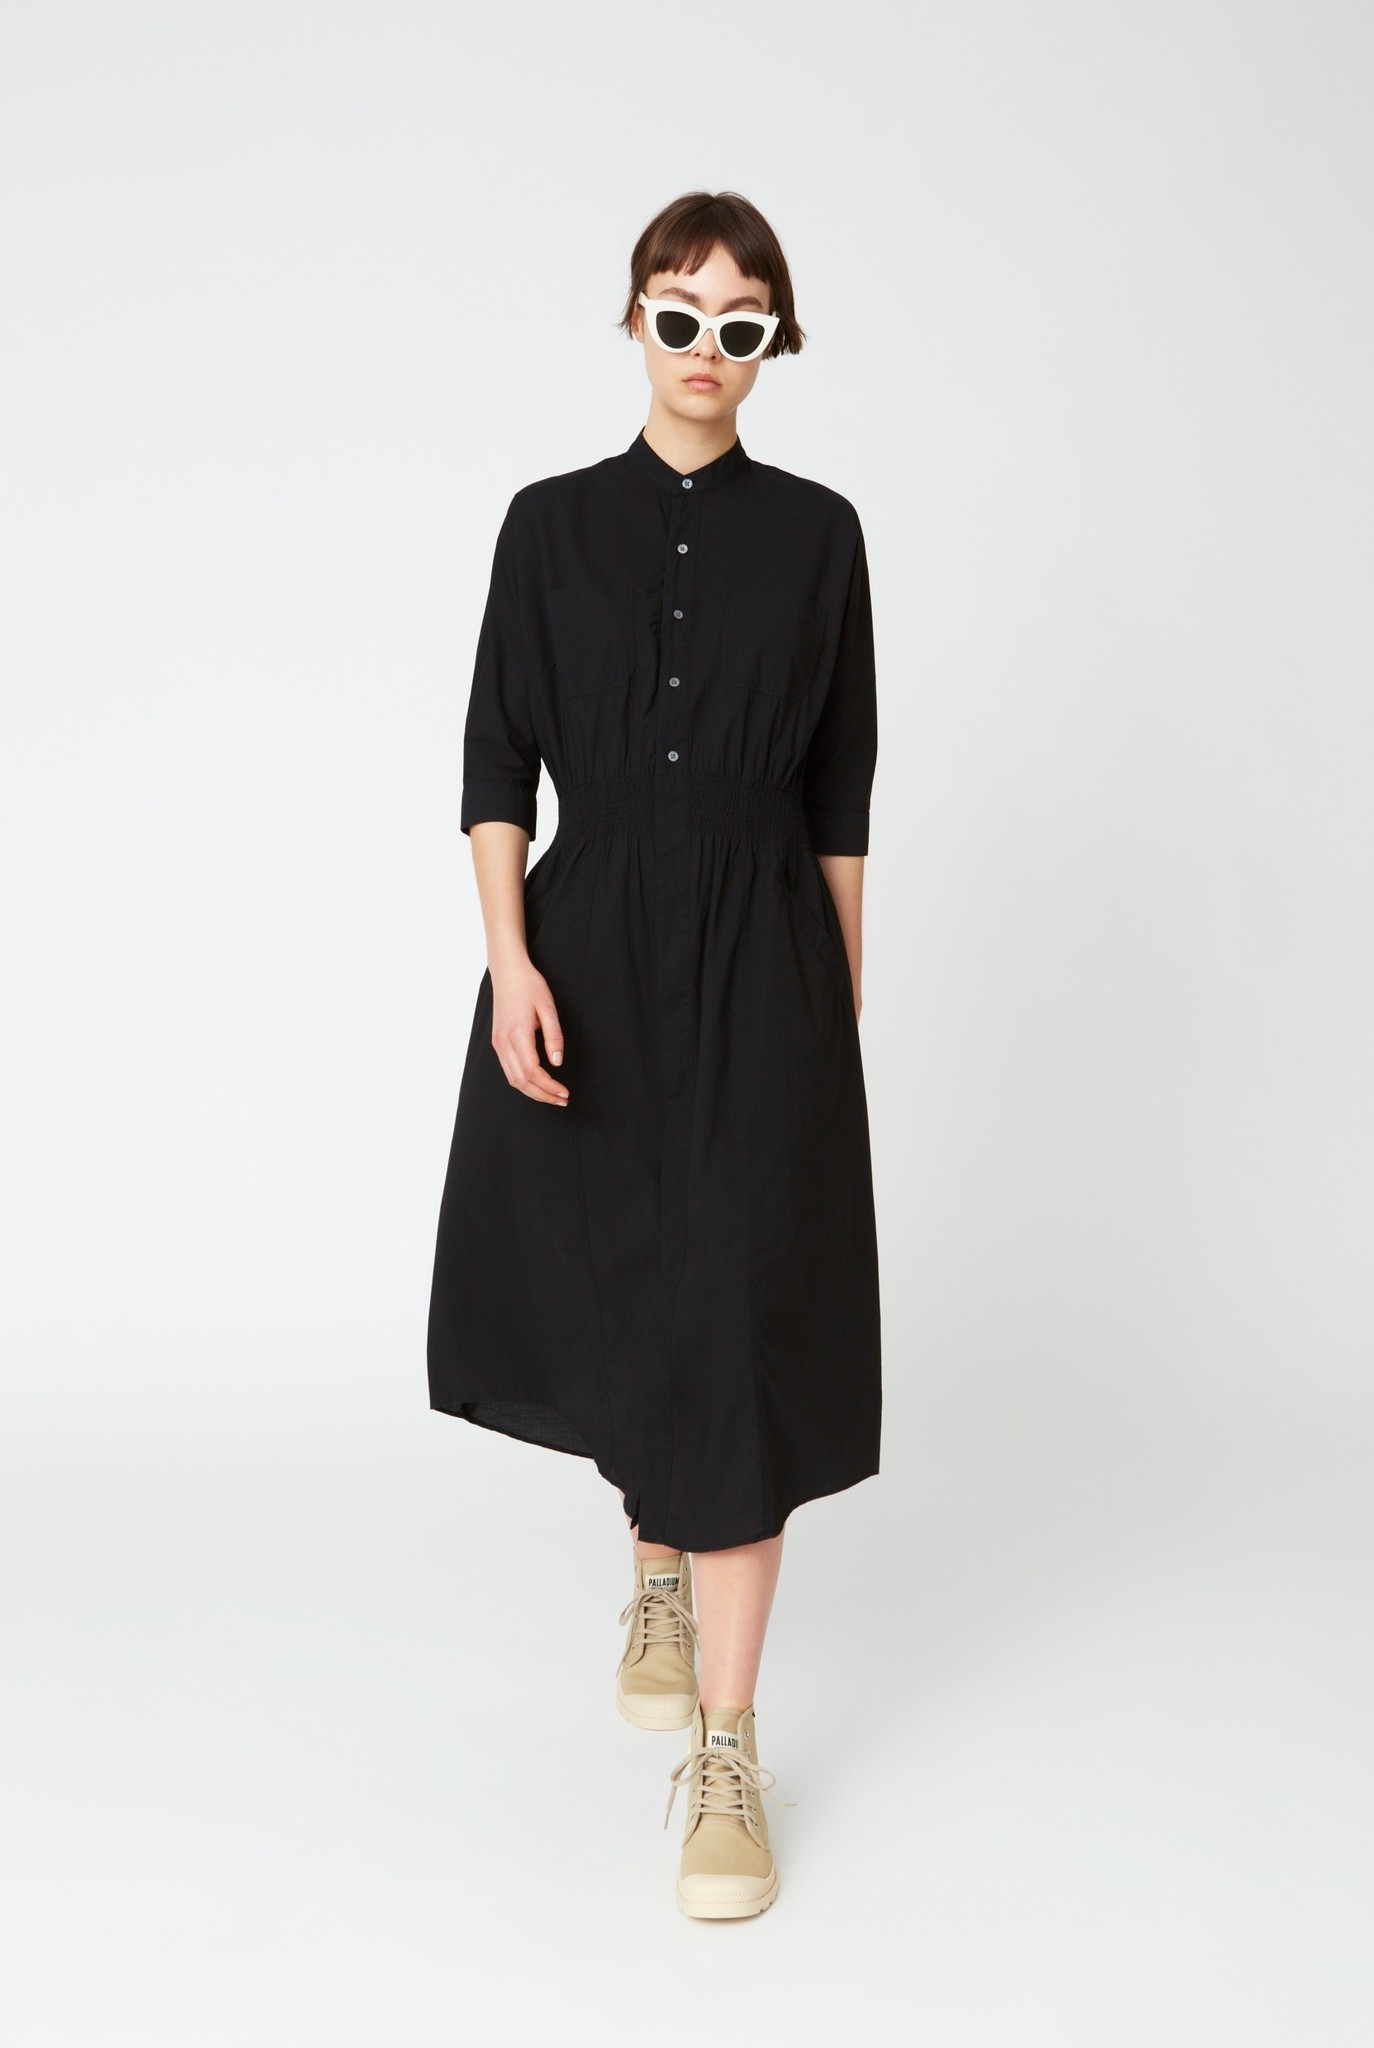 Duo dress Black